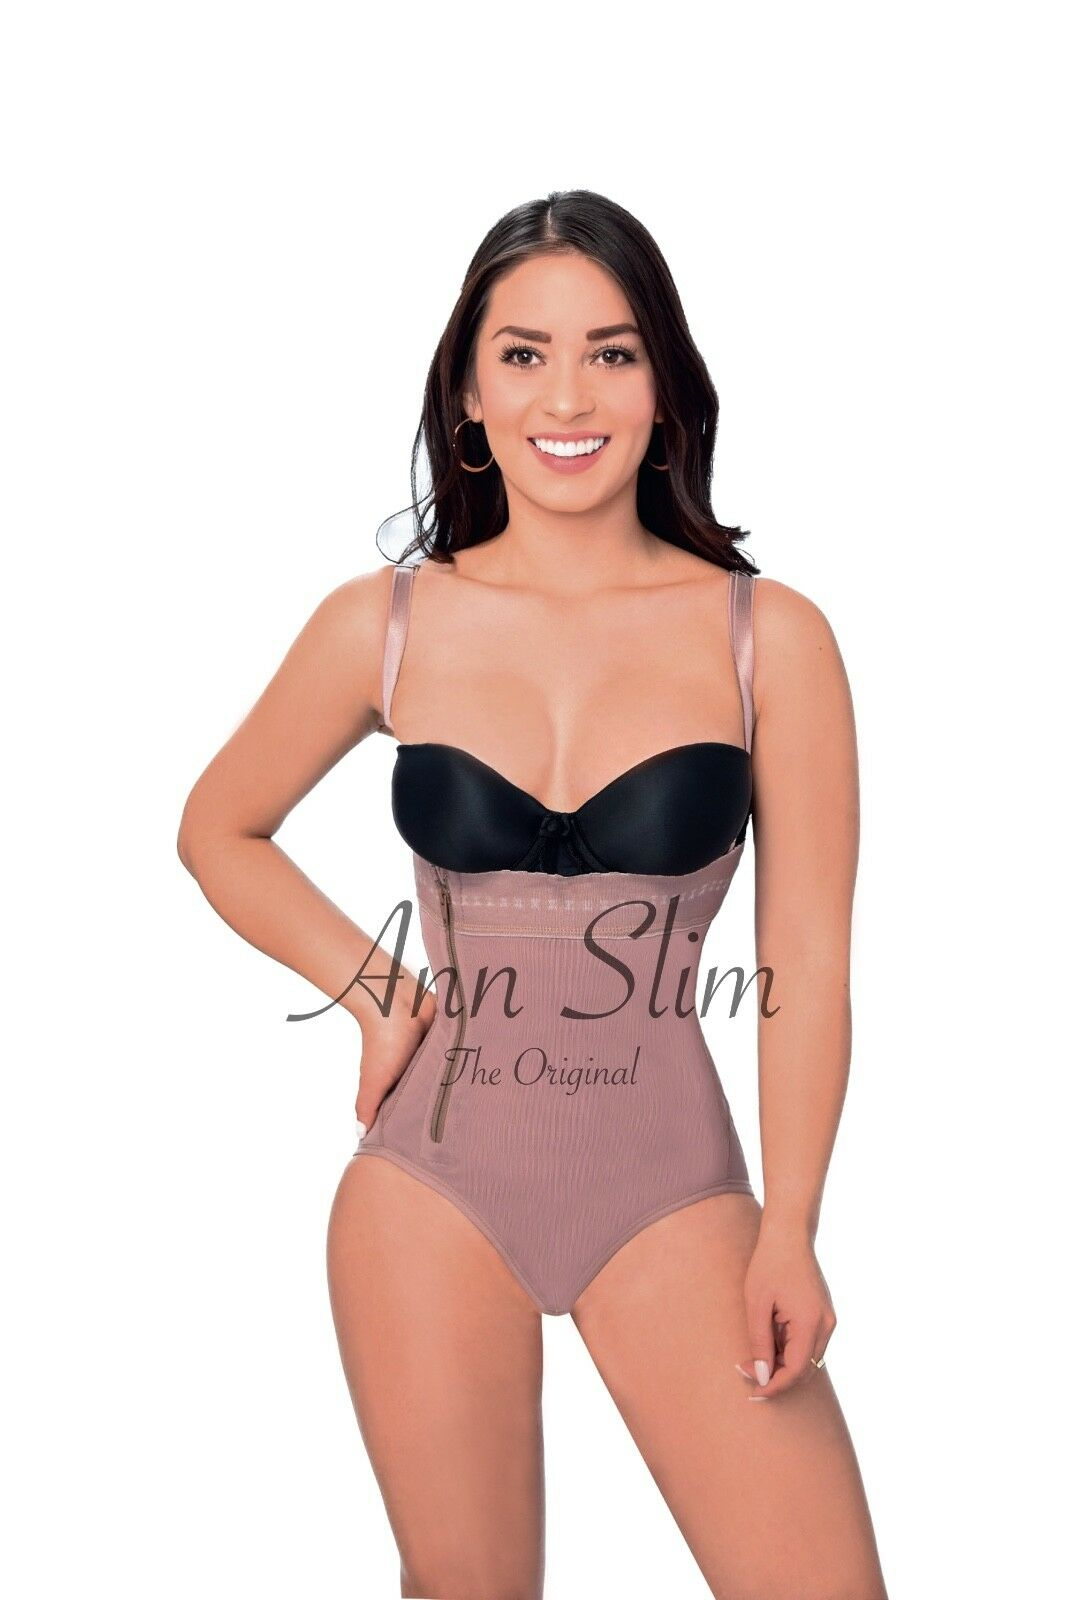 Post Surgical enFAJATE CON FAJA COLOMBIANA REDUCTORA Strapless Termico Reductor